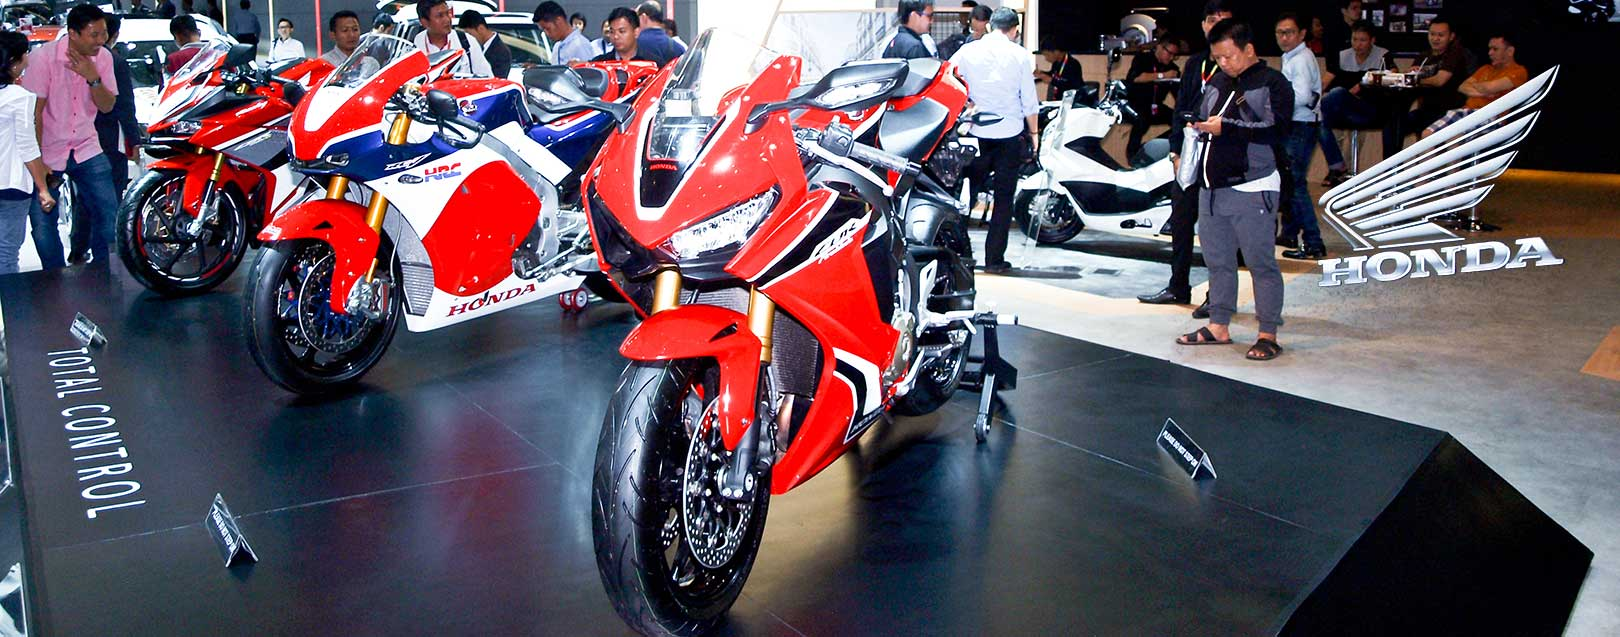 Honda 2Wheelers overall sales up 20% at 544,508 units in July